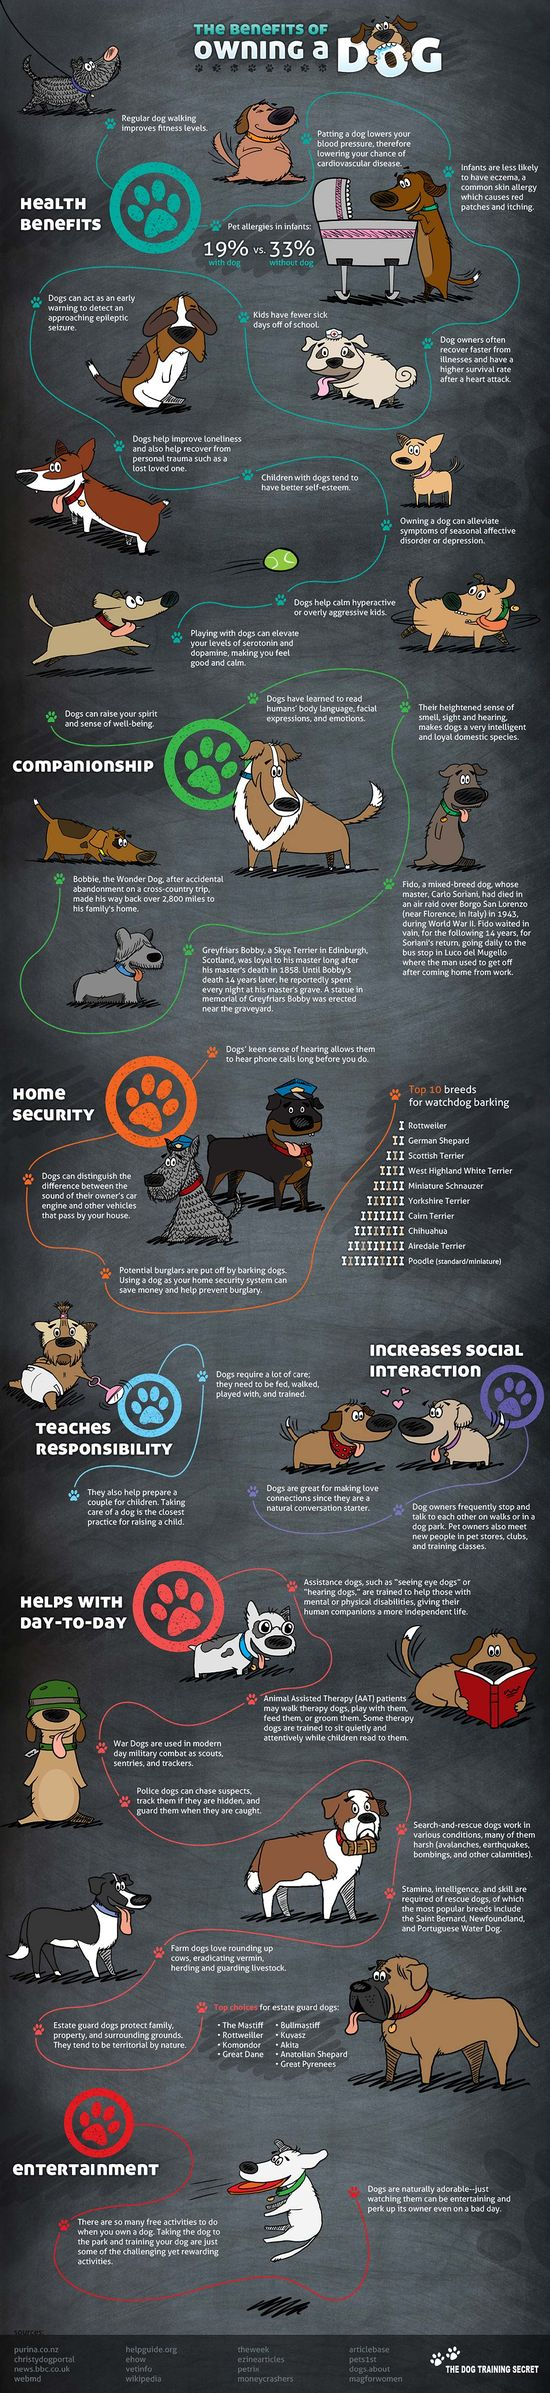 Benefits-Of-Owning-A-Dog